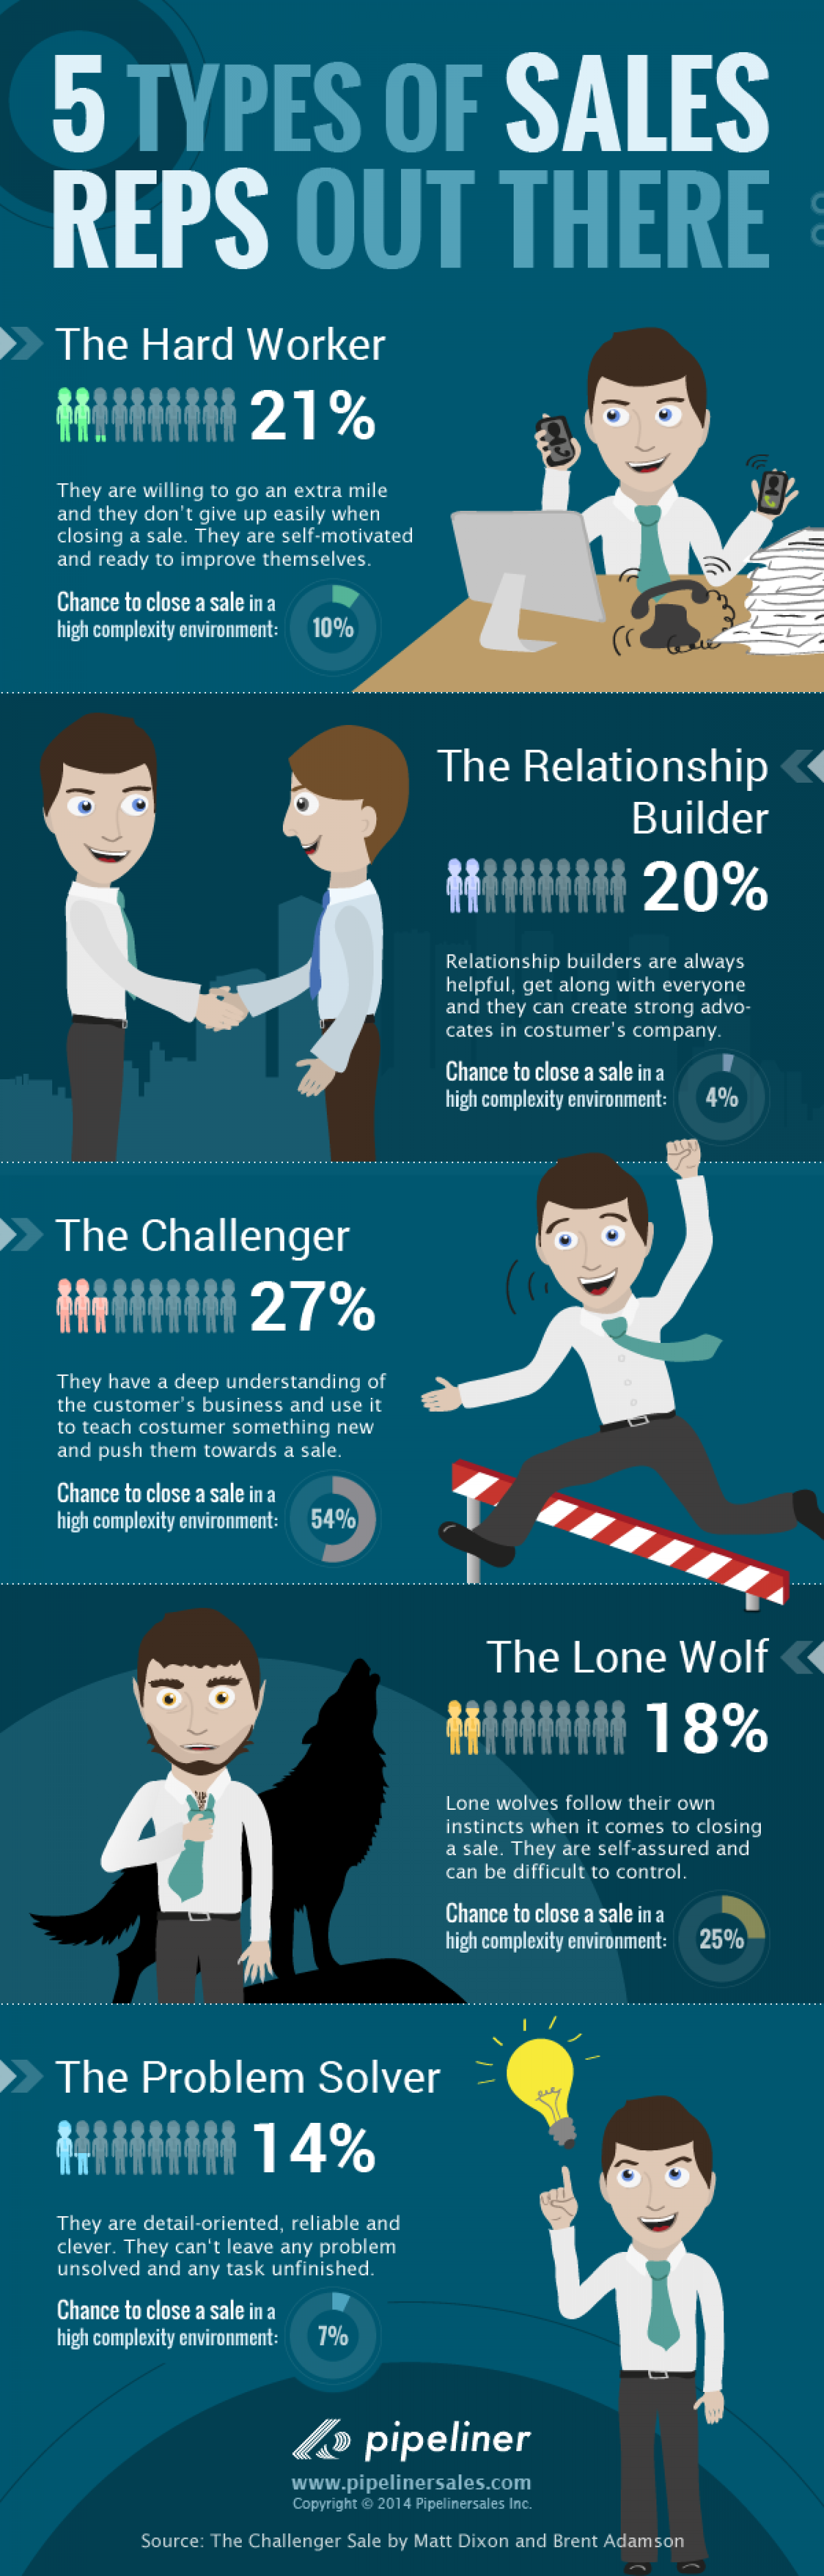 Five B2B Sales Rep Profile Types Infographic